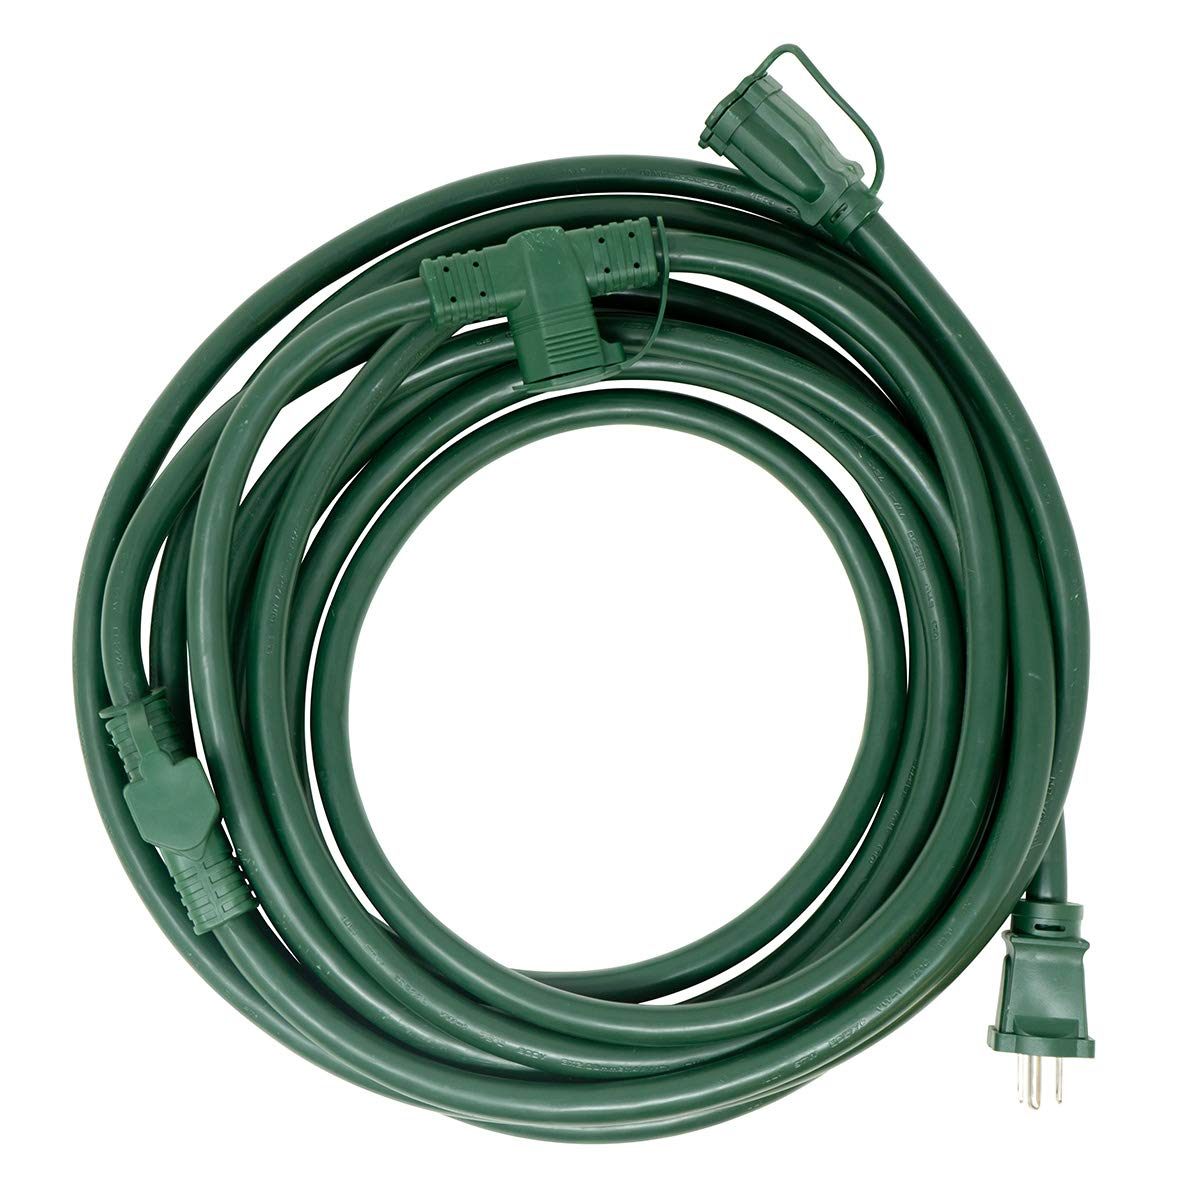 Woods 3030 Yard Master Outdoor Extension Cord with Evenly-Spaced Plugs and 3 Outlets 25 Ft Green